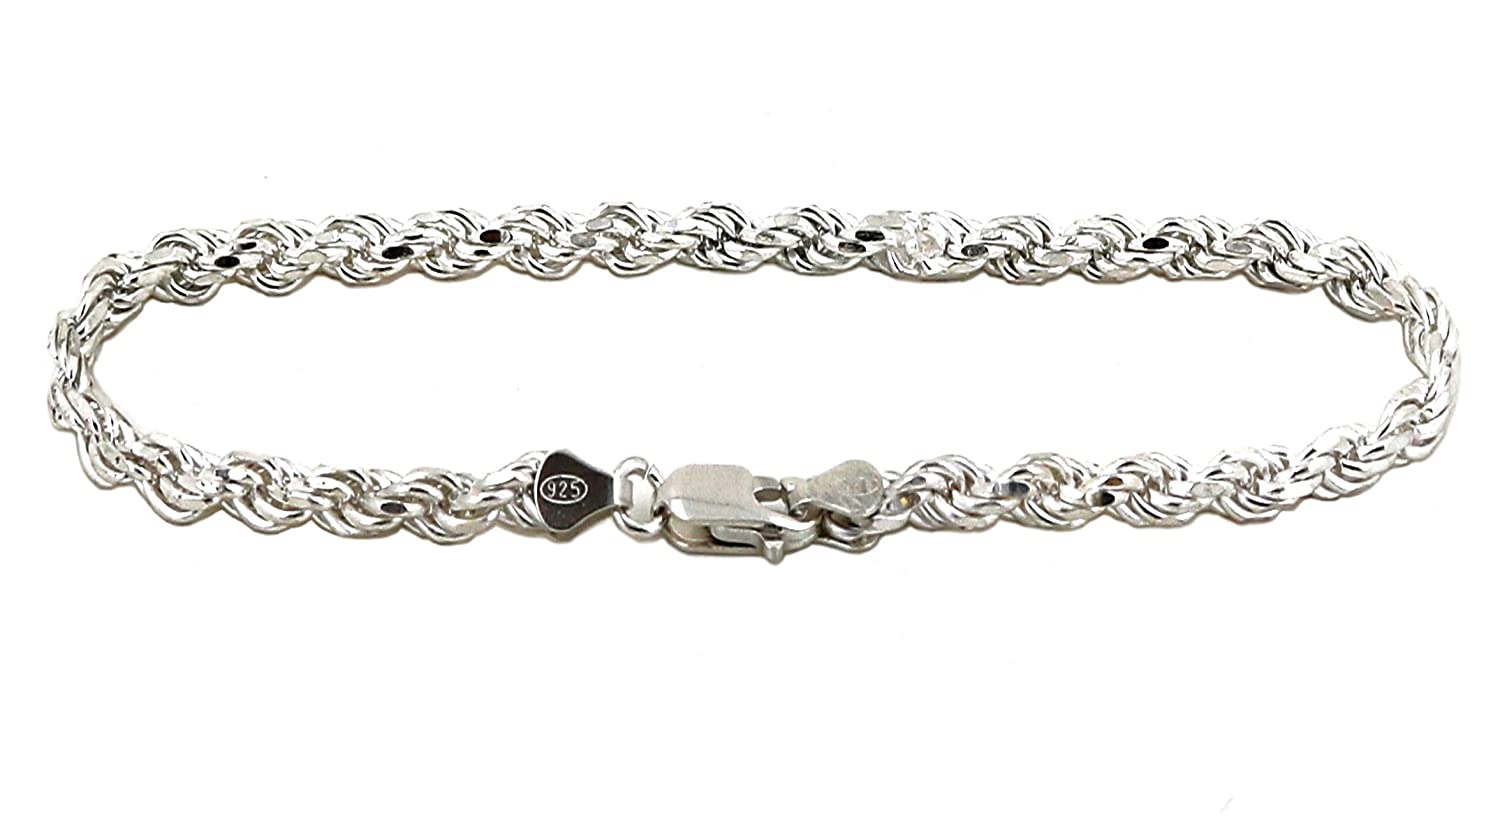 b676feb5e6aee Amazon.com  Solid 925 Sterling Silver Diamond Cut Rope Bracelet   Anklet  for Men and Women 2.0mm to 6.0mm